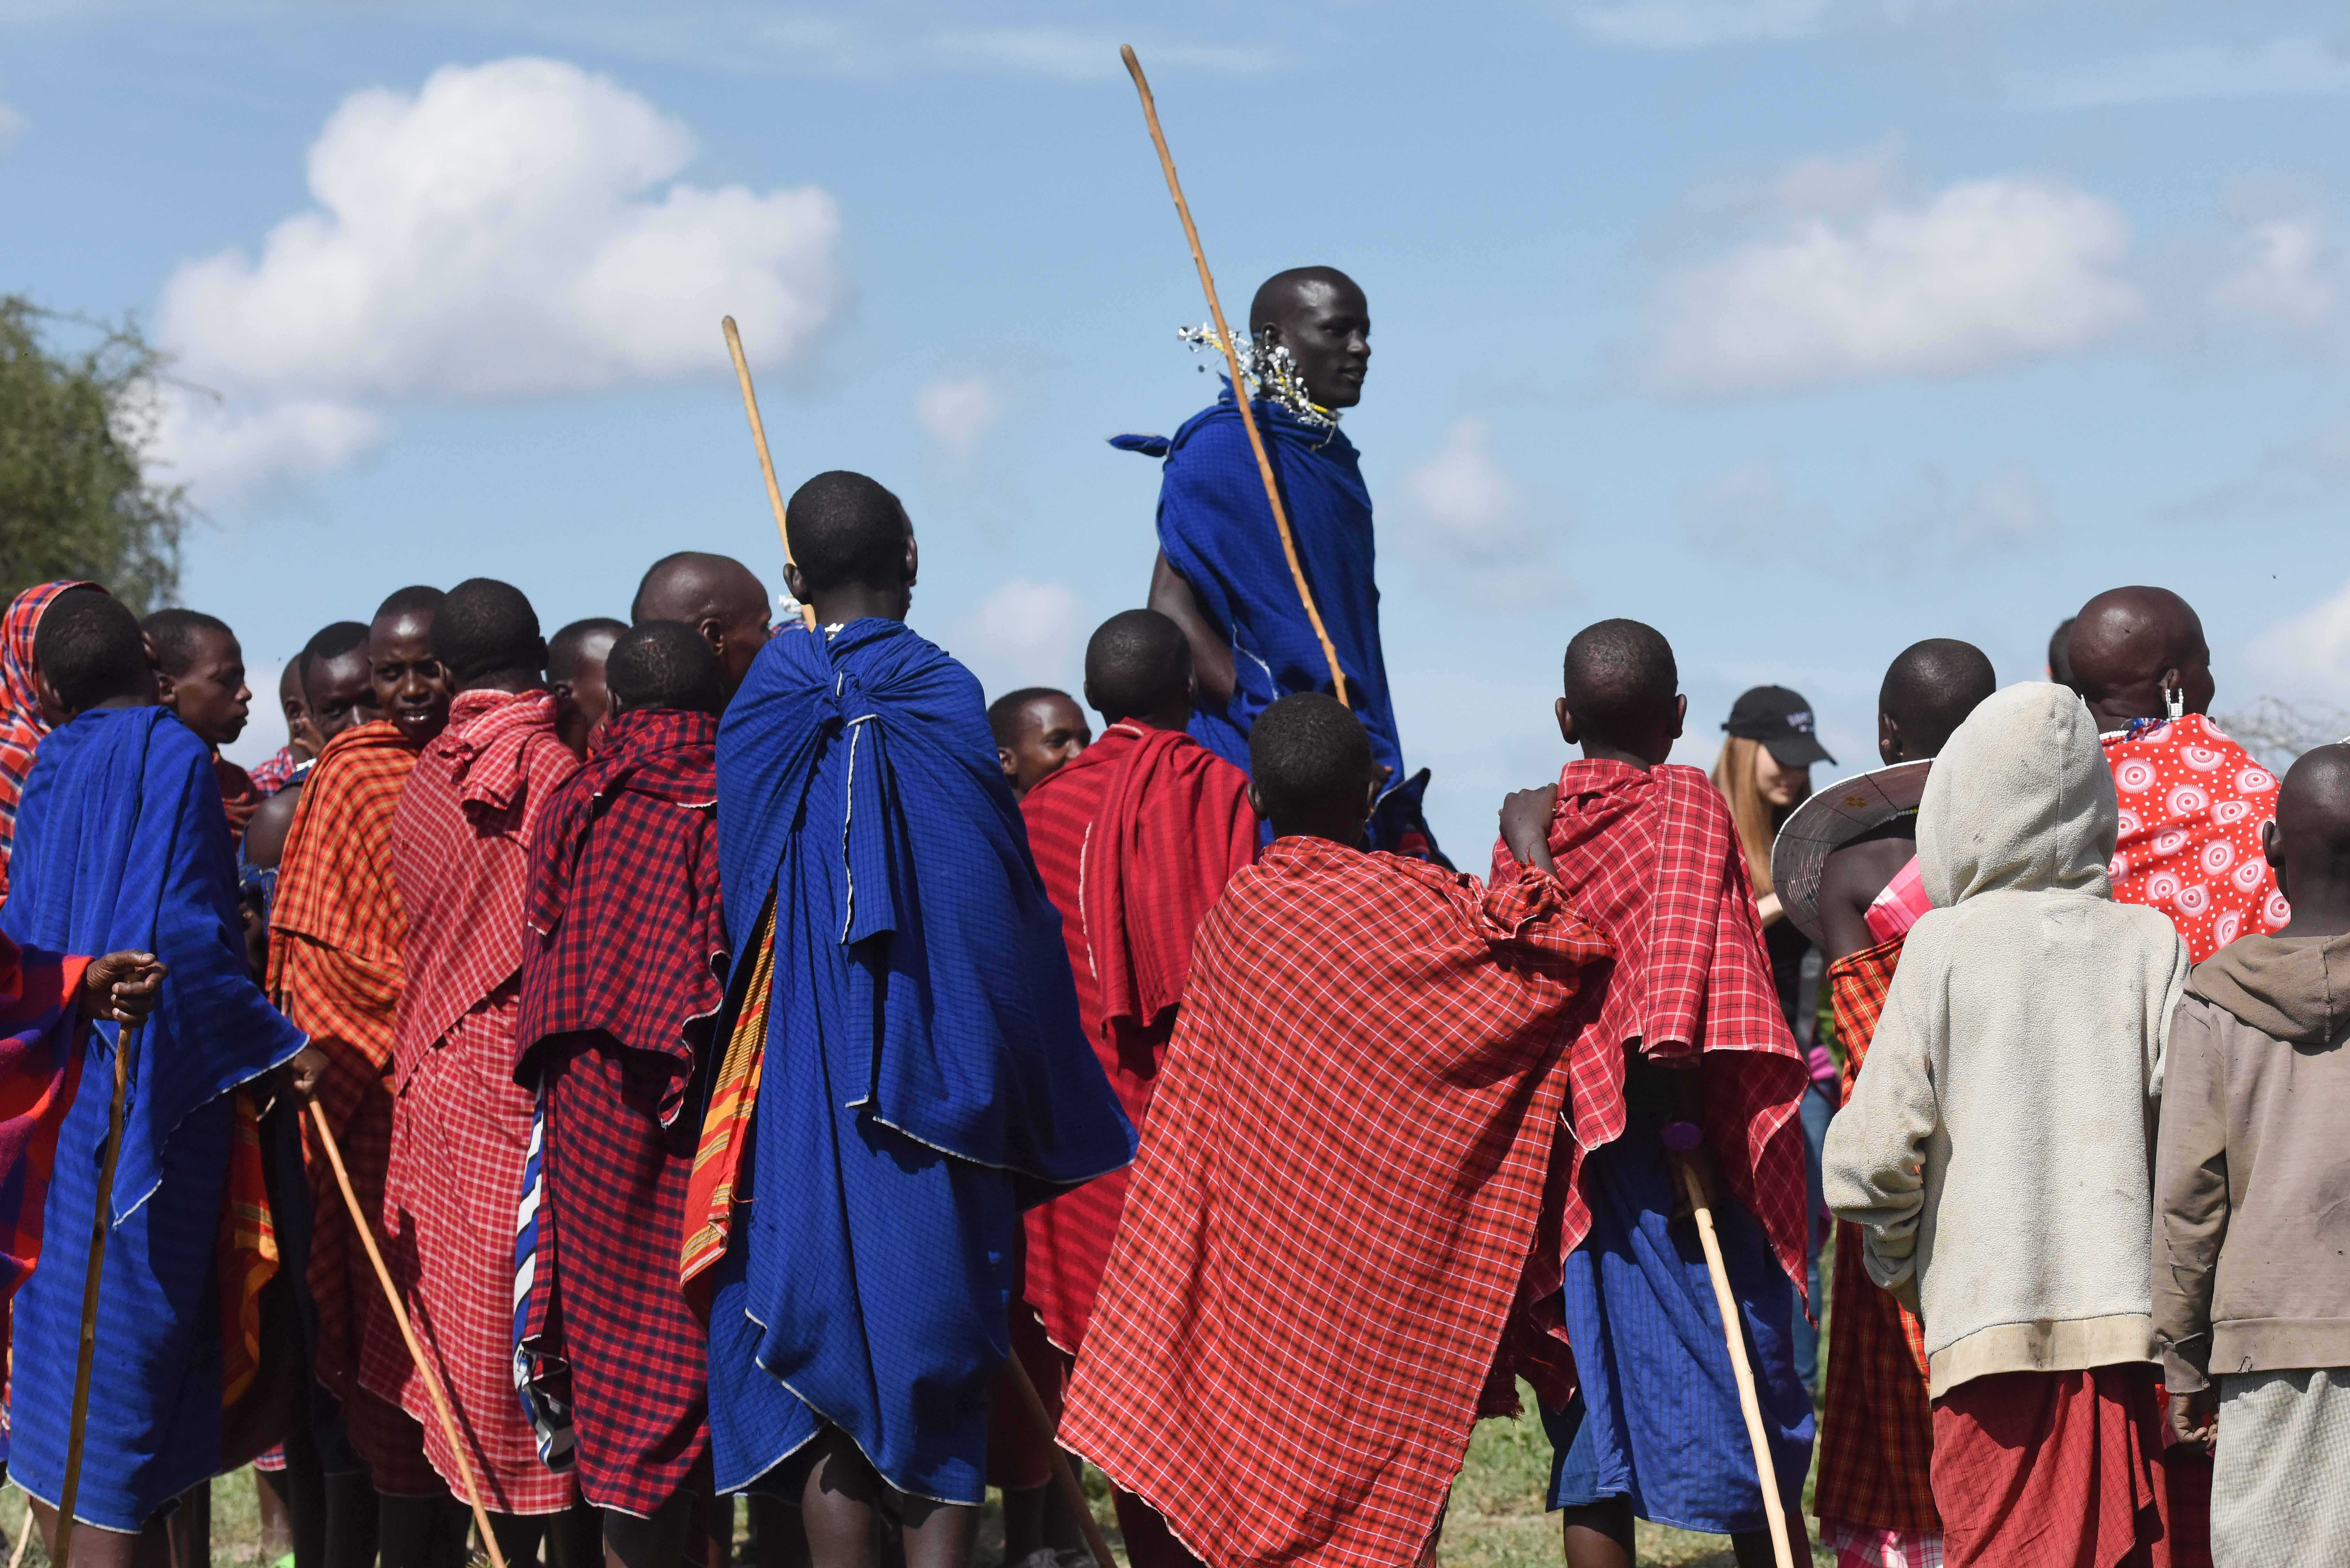 Maasai Tribe members put on a dance performance for the visitors from the Gender Mainstreaming seminar, during their culture day May 21, 2015.  The Massai tribe is a group of semi-nomadic people inhabiting southern Kenya and northern Tanzania.  (U.S. Air Force photo by Staff Sgt. Maria Bowman)